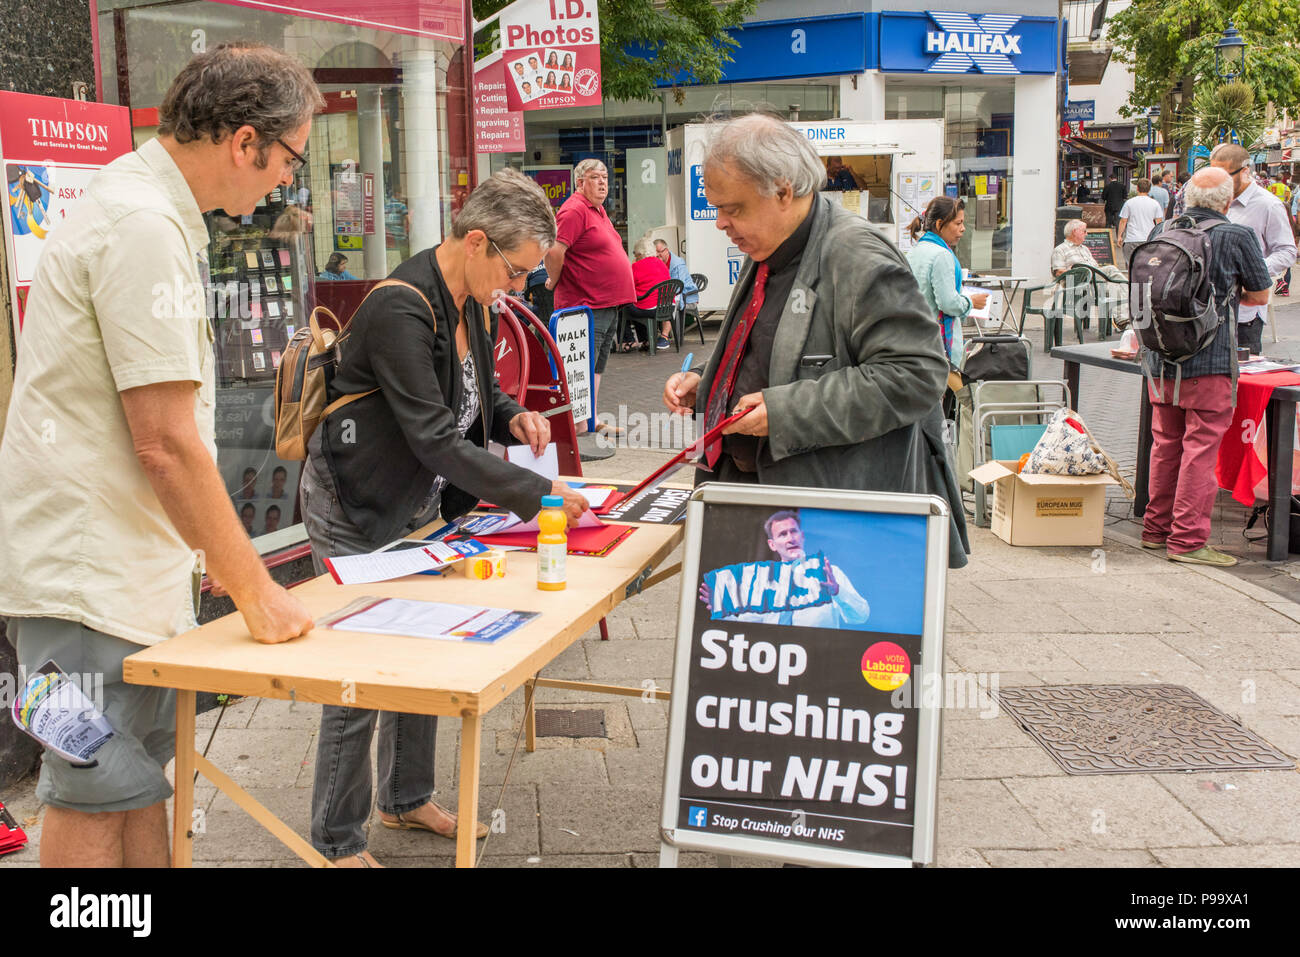 People signing a petition to support the NHS in Ramsgate, Thanet, Kent, England, UK. - Stock Image